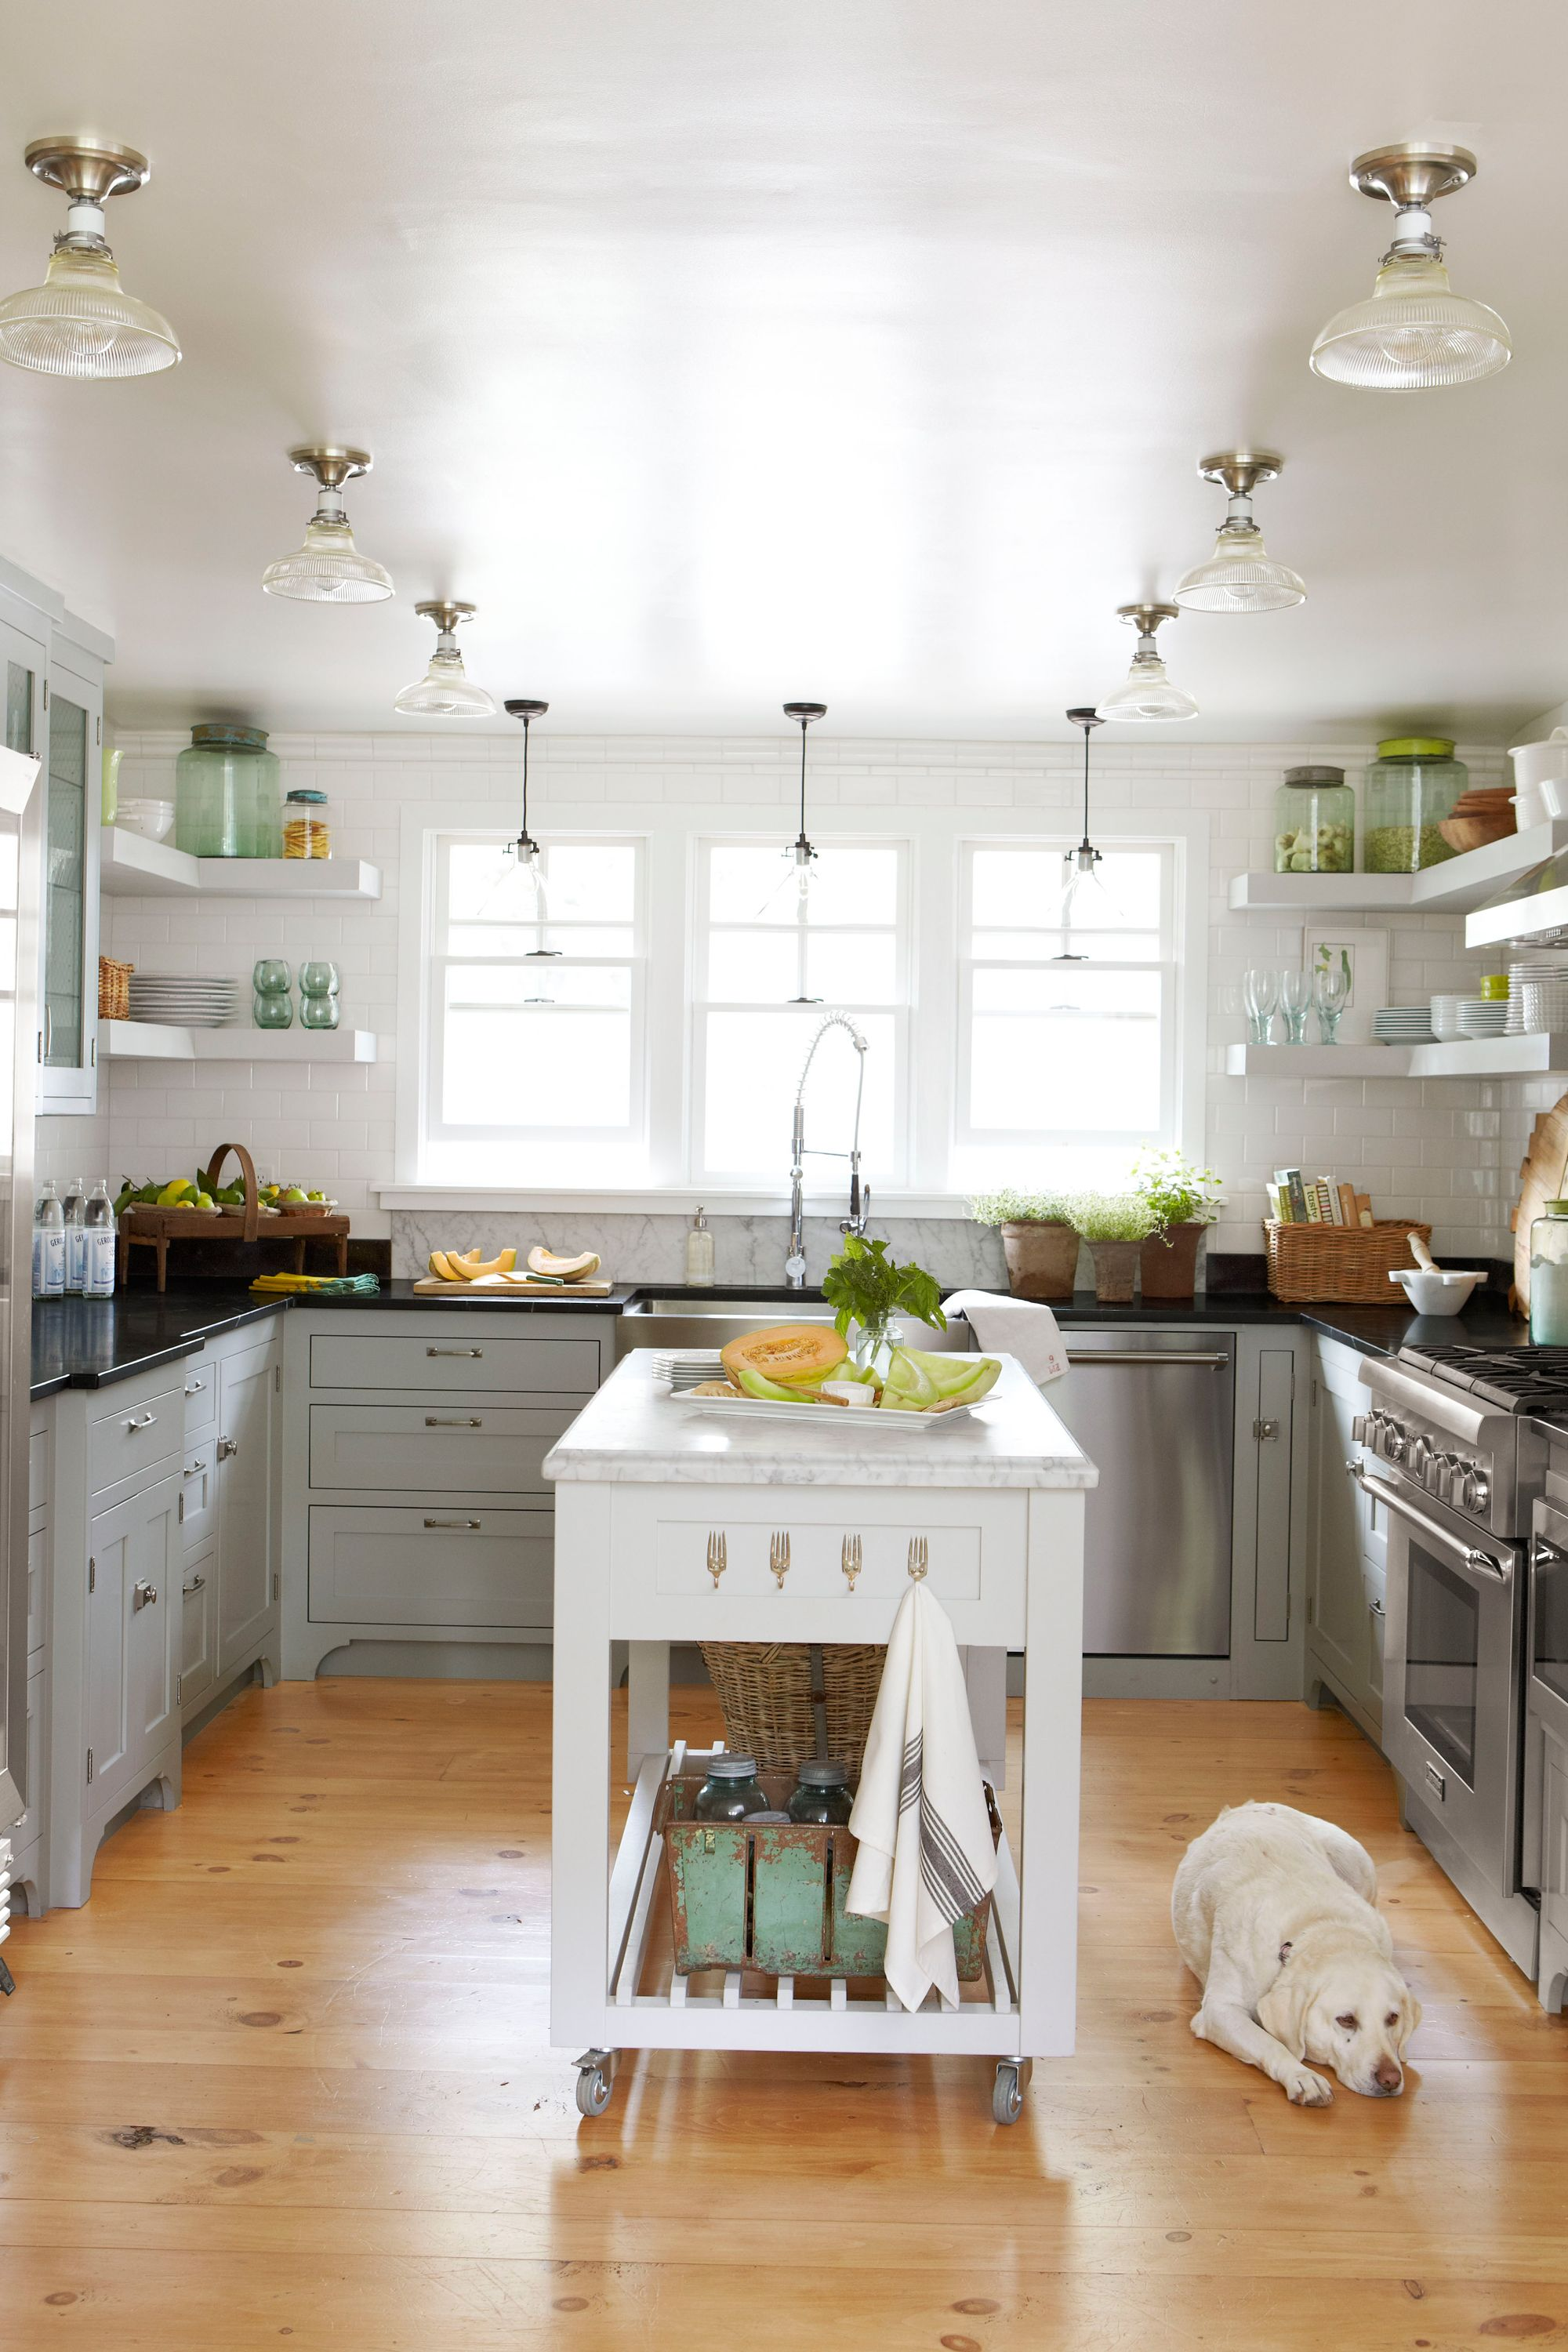 simple wooden porcelain large chair kitchens counter wall brown leather islands green jug bright lovely lime plain dining white designs paint kitchen with